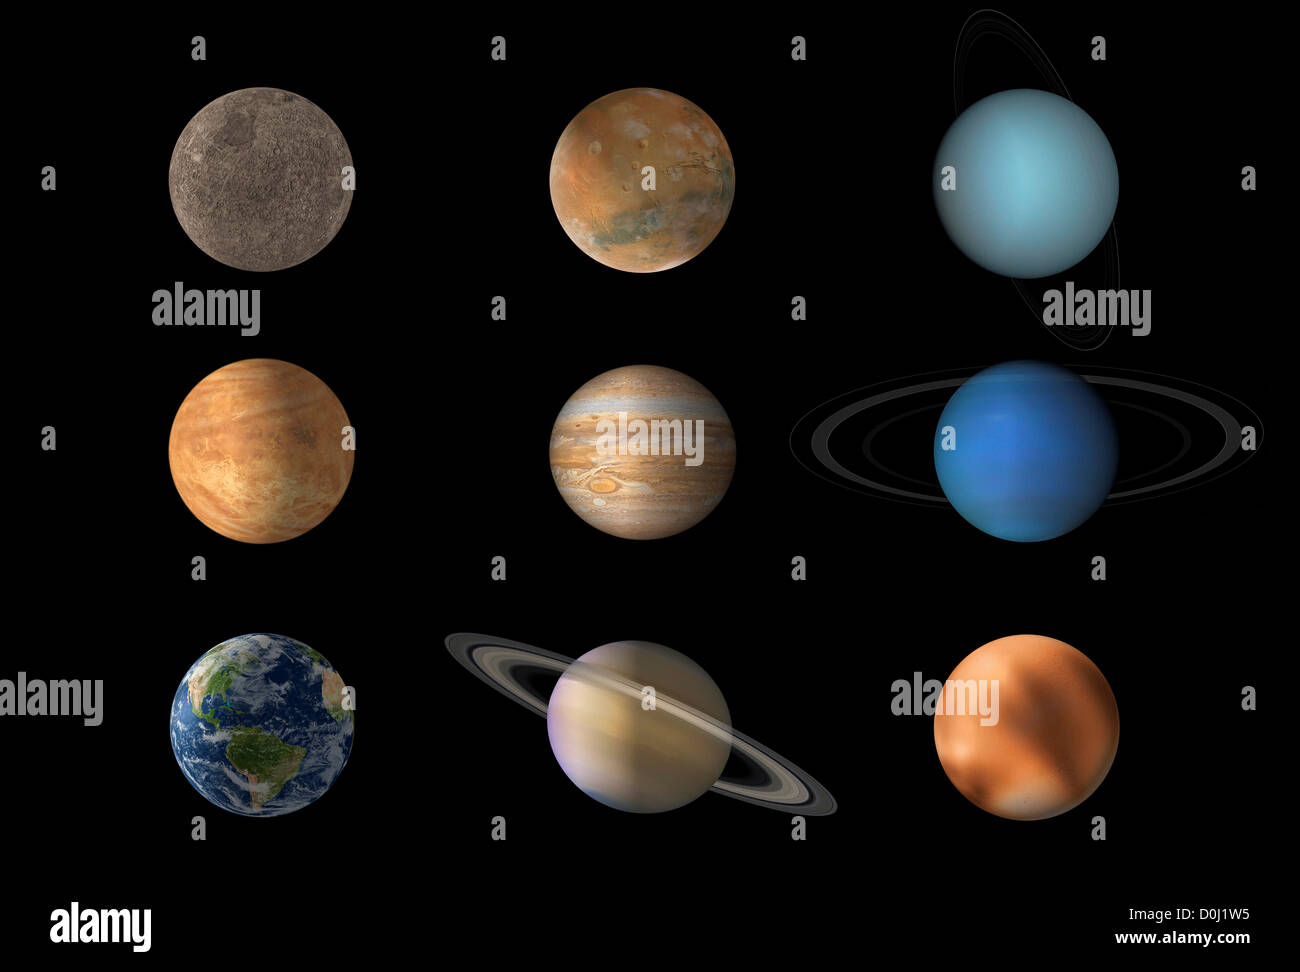 Digital Illustration Of The Nine Planets Of Our Solar